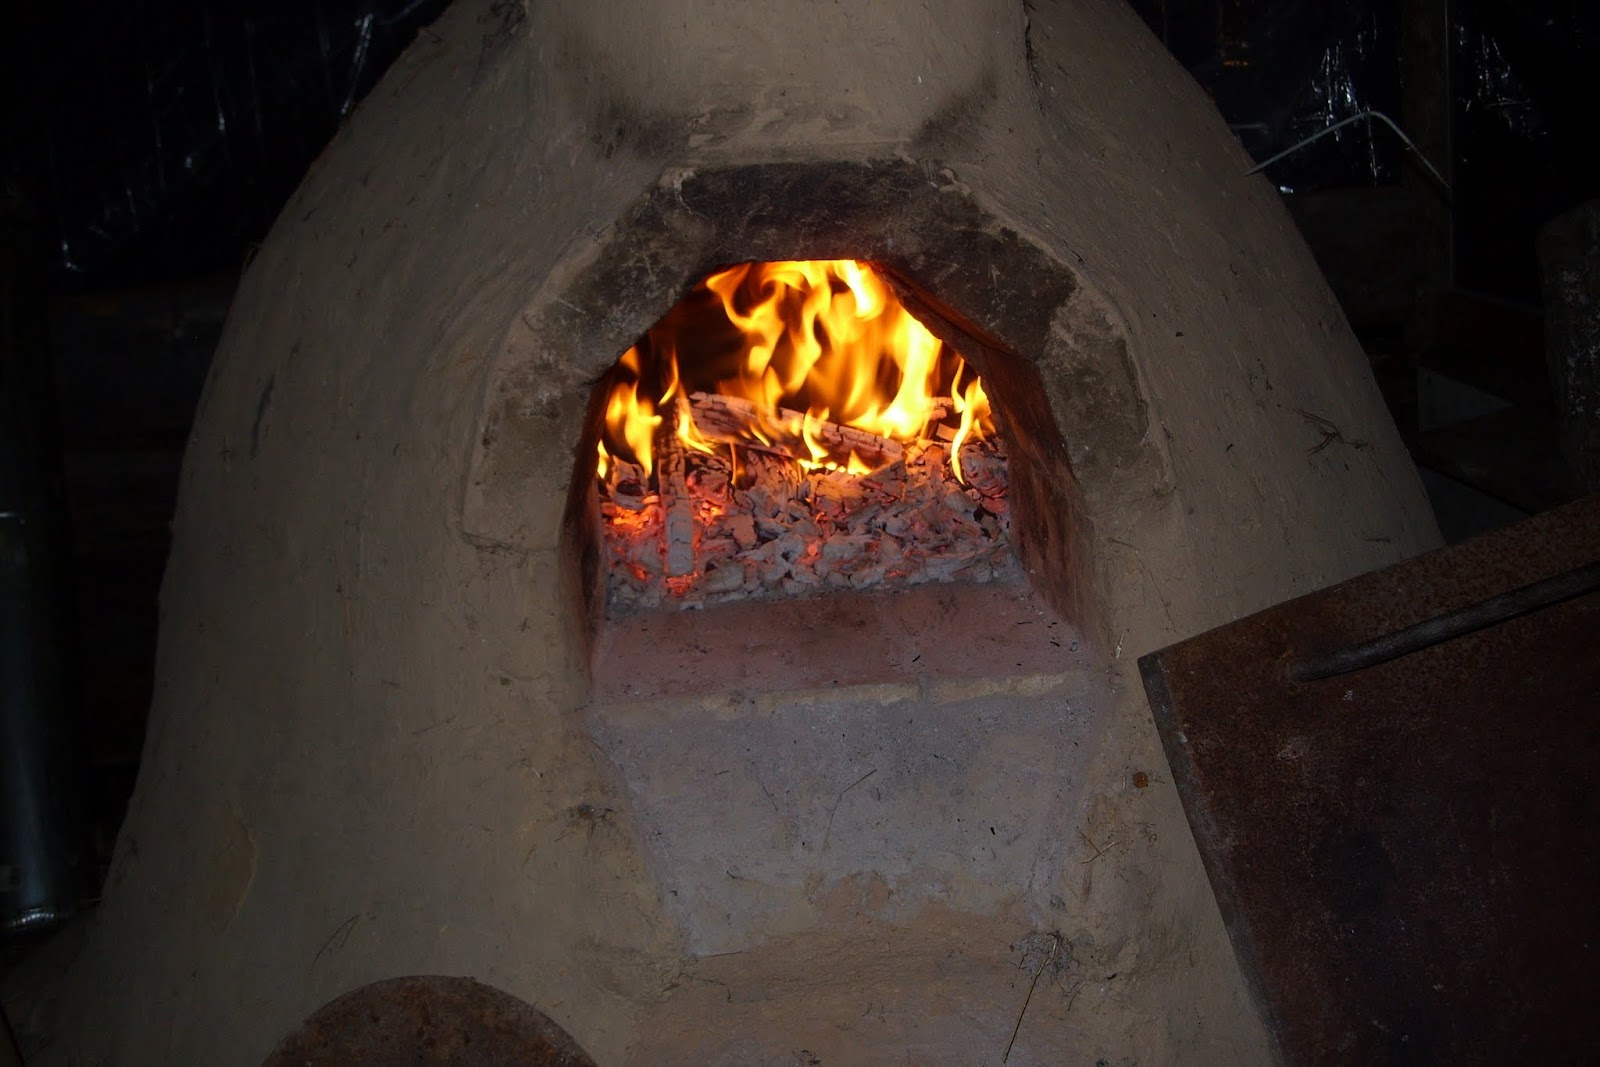 With The Unusually High Temperatures We Had For The Last Few Daysit Seemed Like A Good Time To Use Our Mud Oven For Some Of Our Thanksgiving Day Meal And